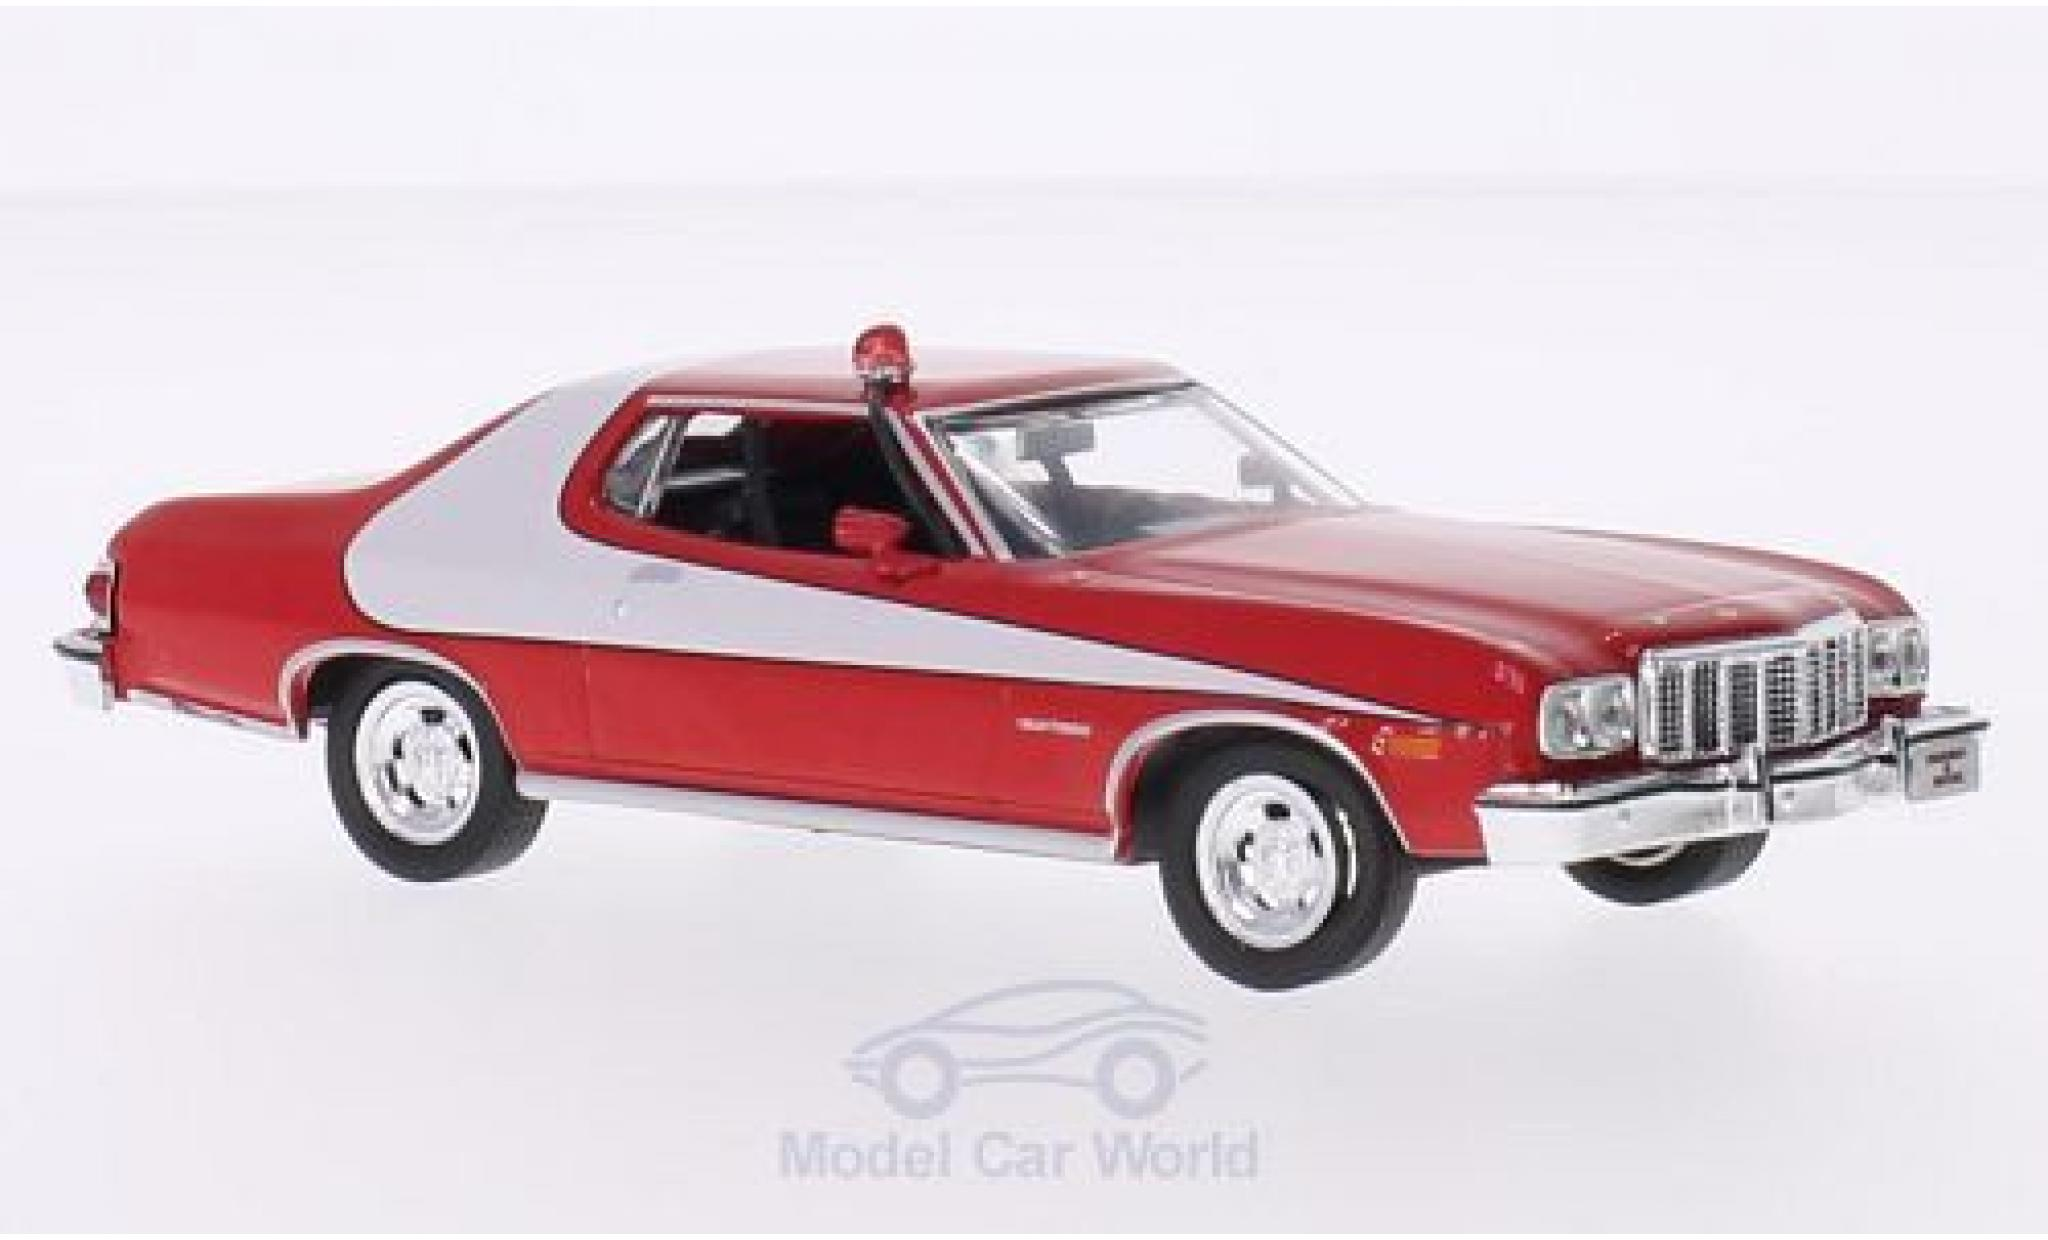 Ford Gran Torino 1/43 Greenlight rouge/blanche 1976 Starsky & Hutch TV-Serie